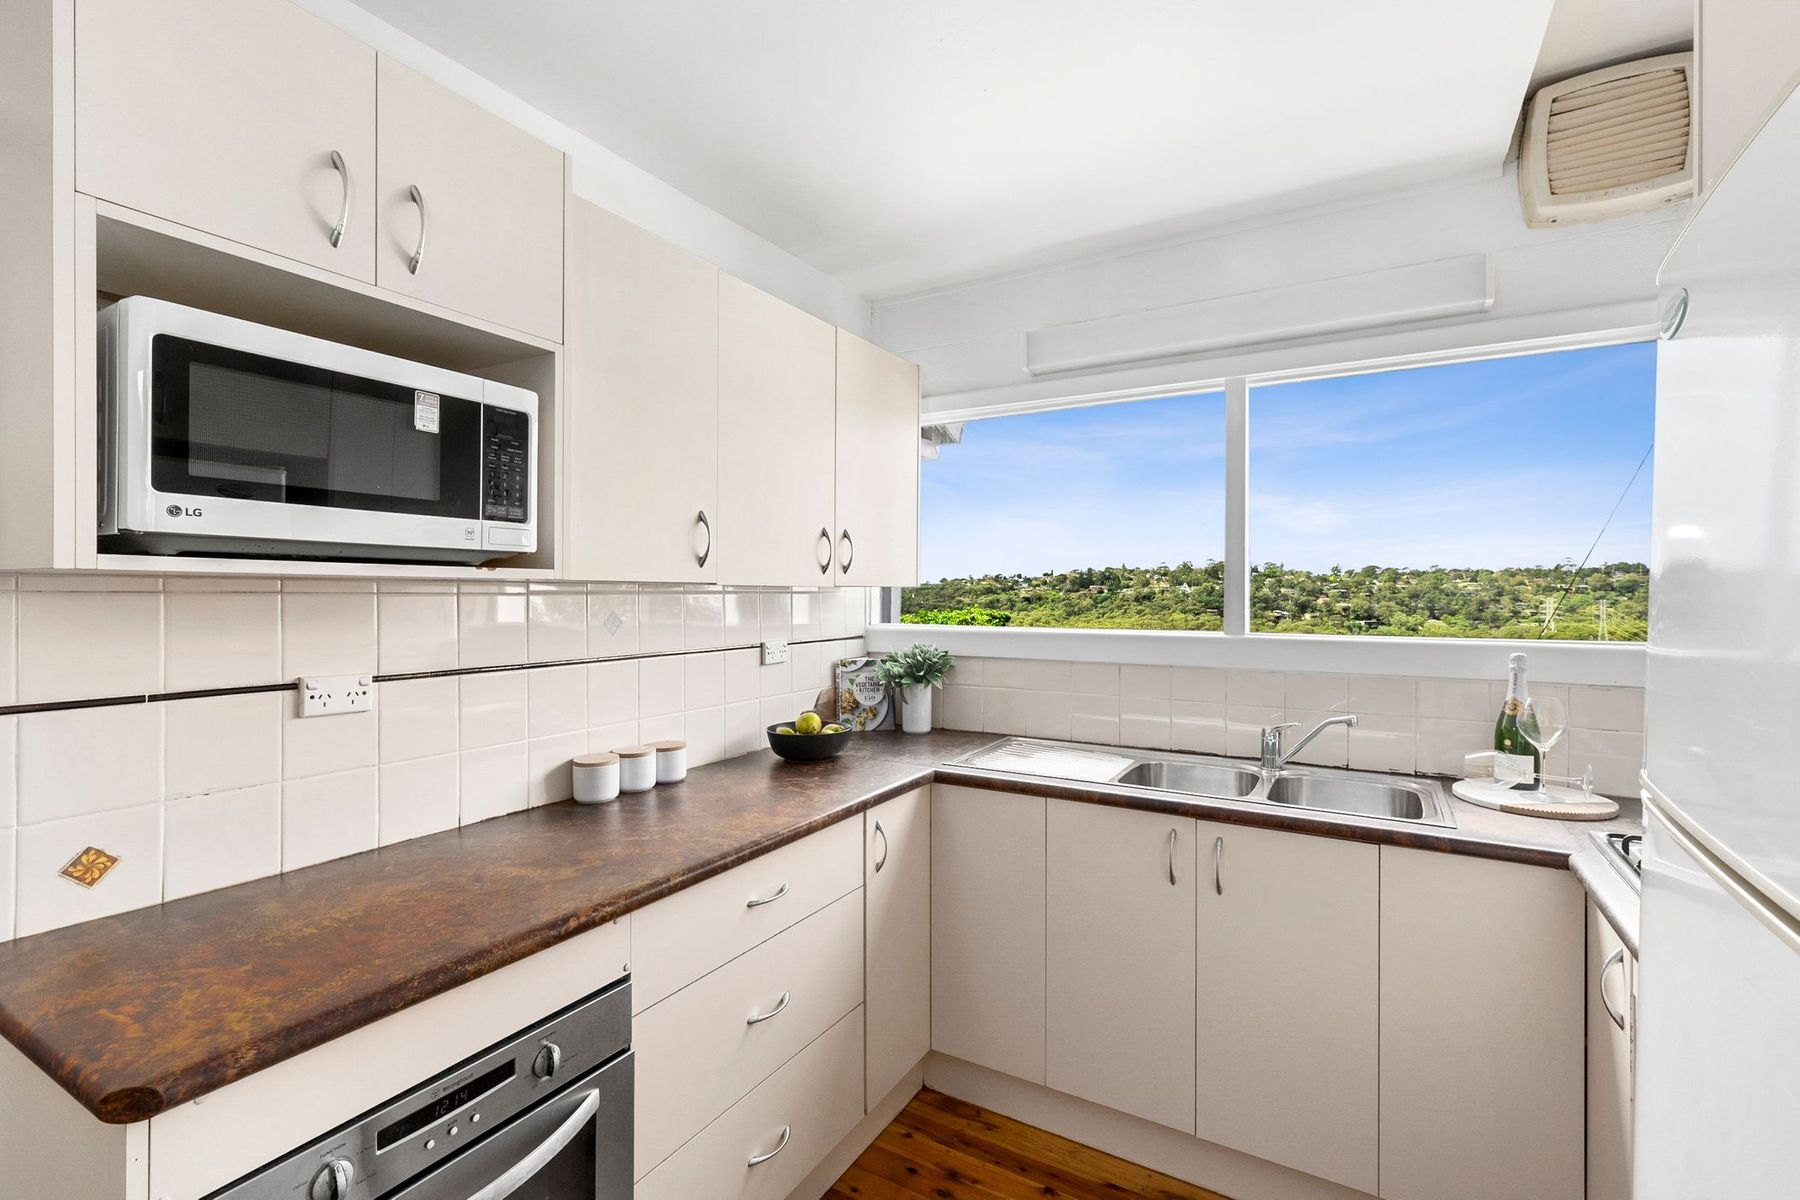 98 The Esplanade, Frenchs Forest, NSW 2086